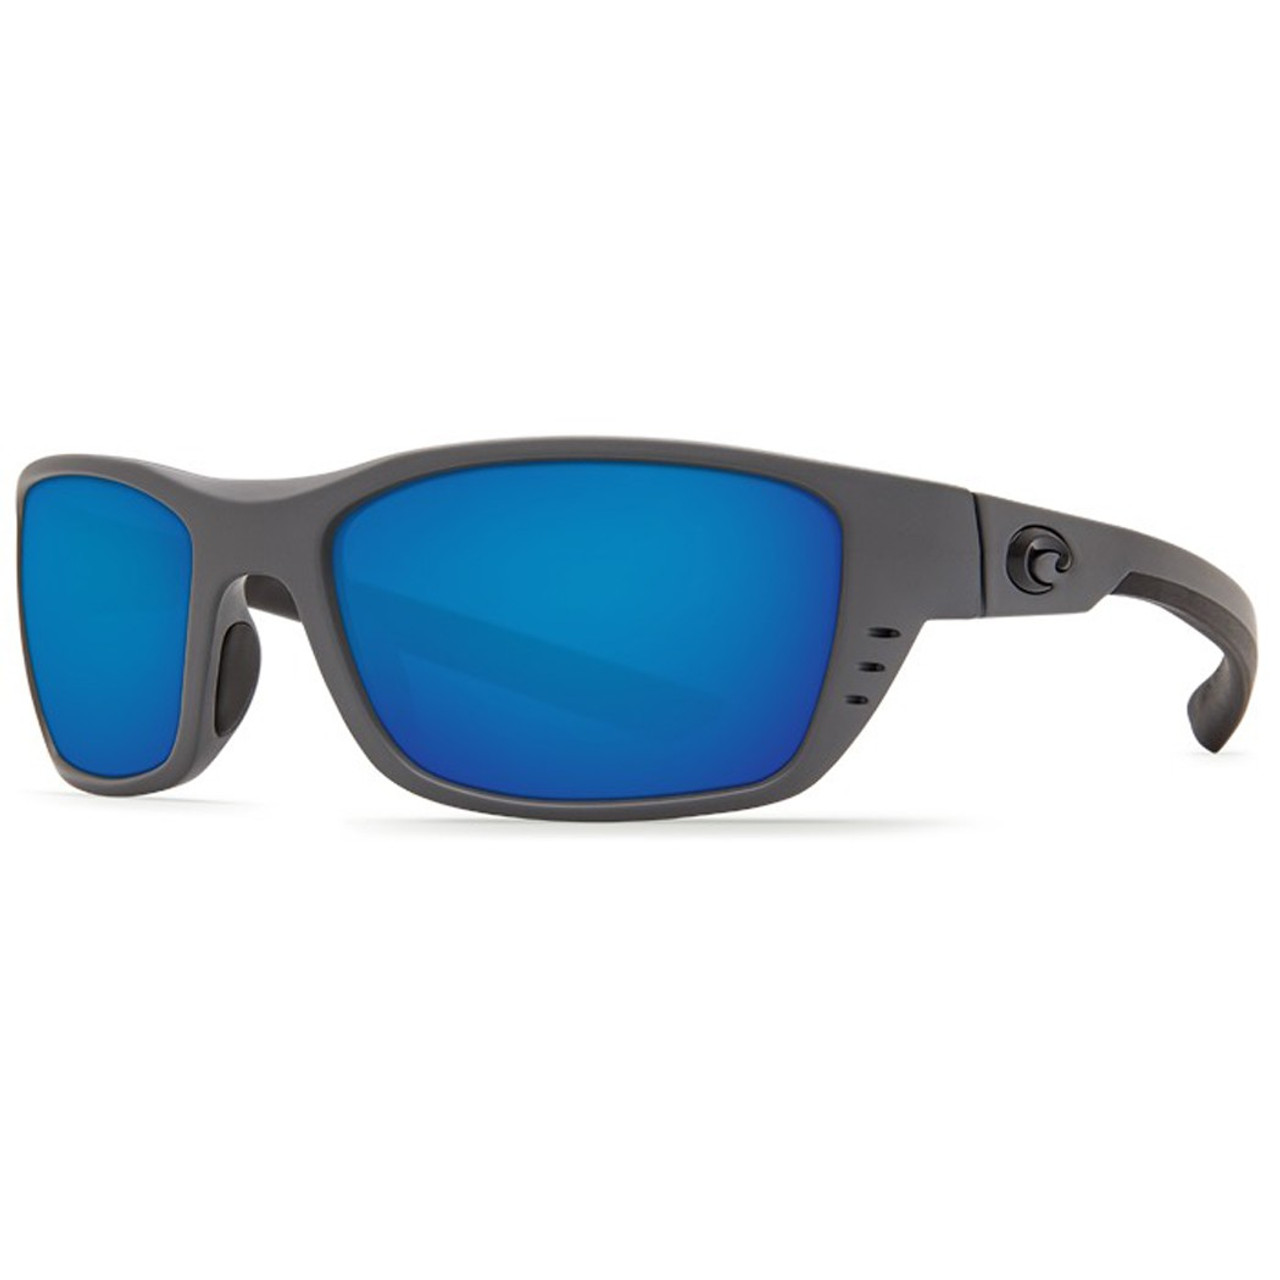 fb4340b67 Costa Sunglasses - Whitetip - Matte Gray Blue Mirror 580G - Surf and Dirt